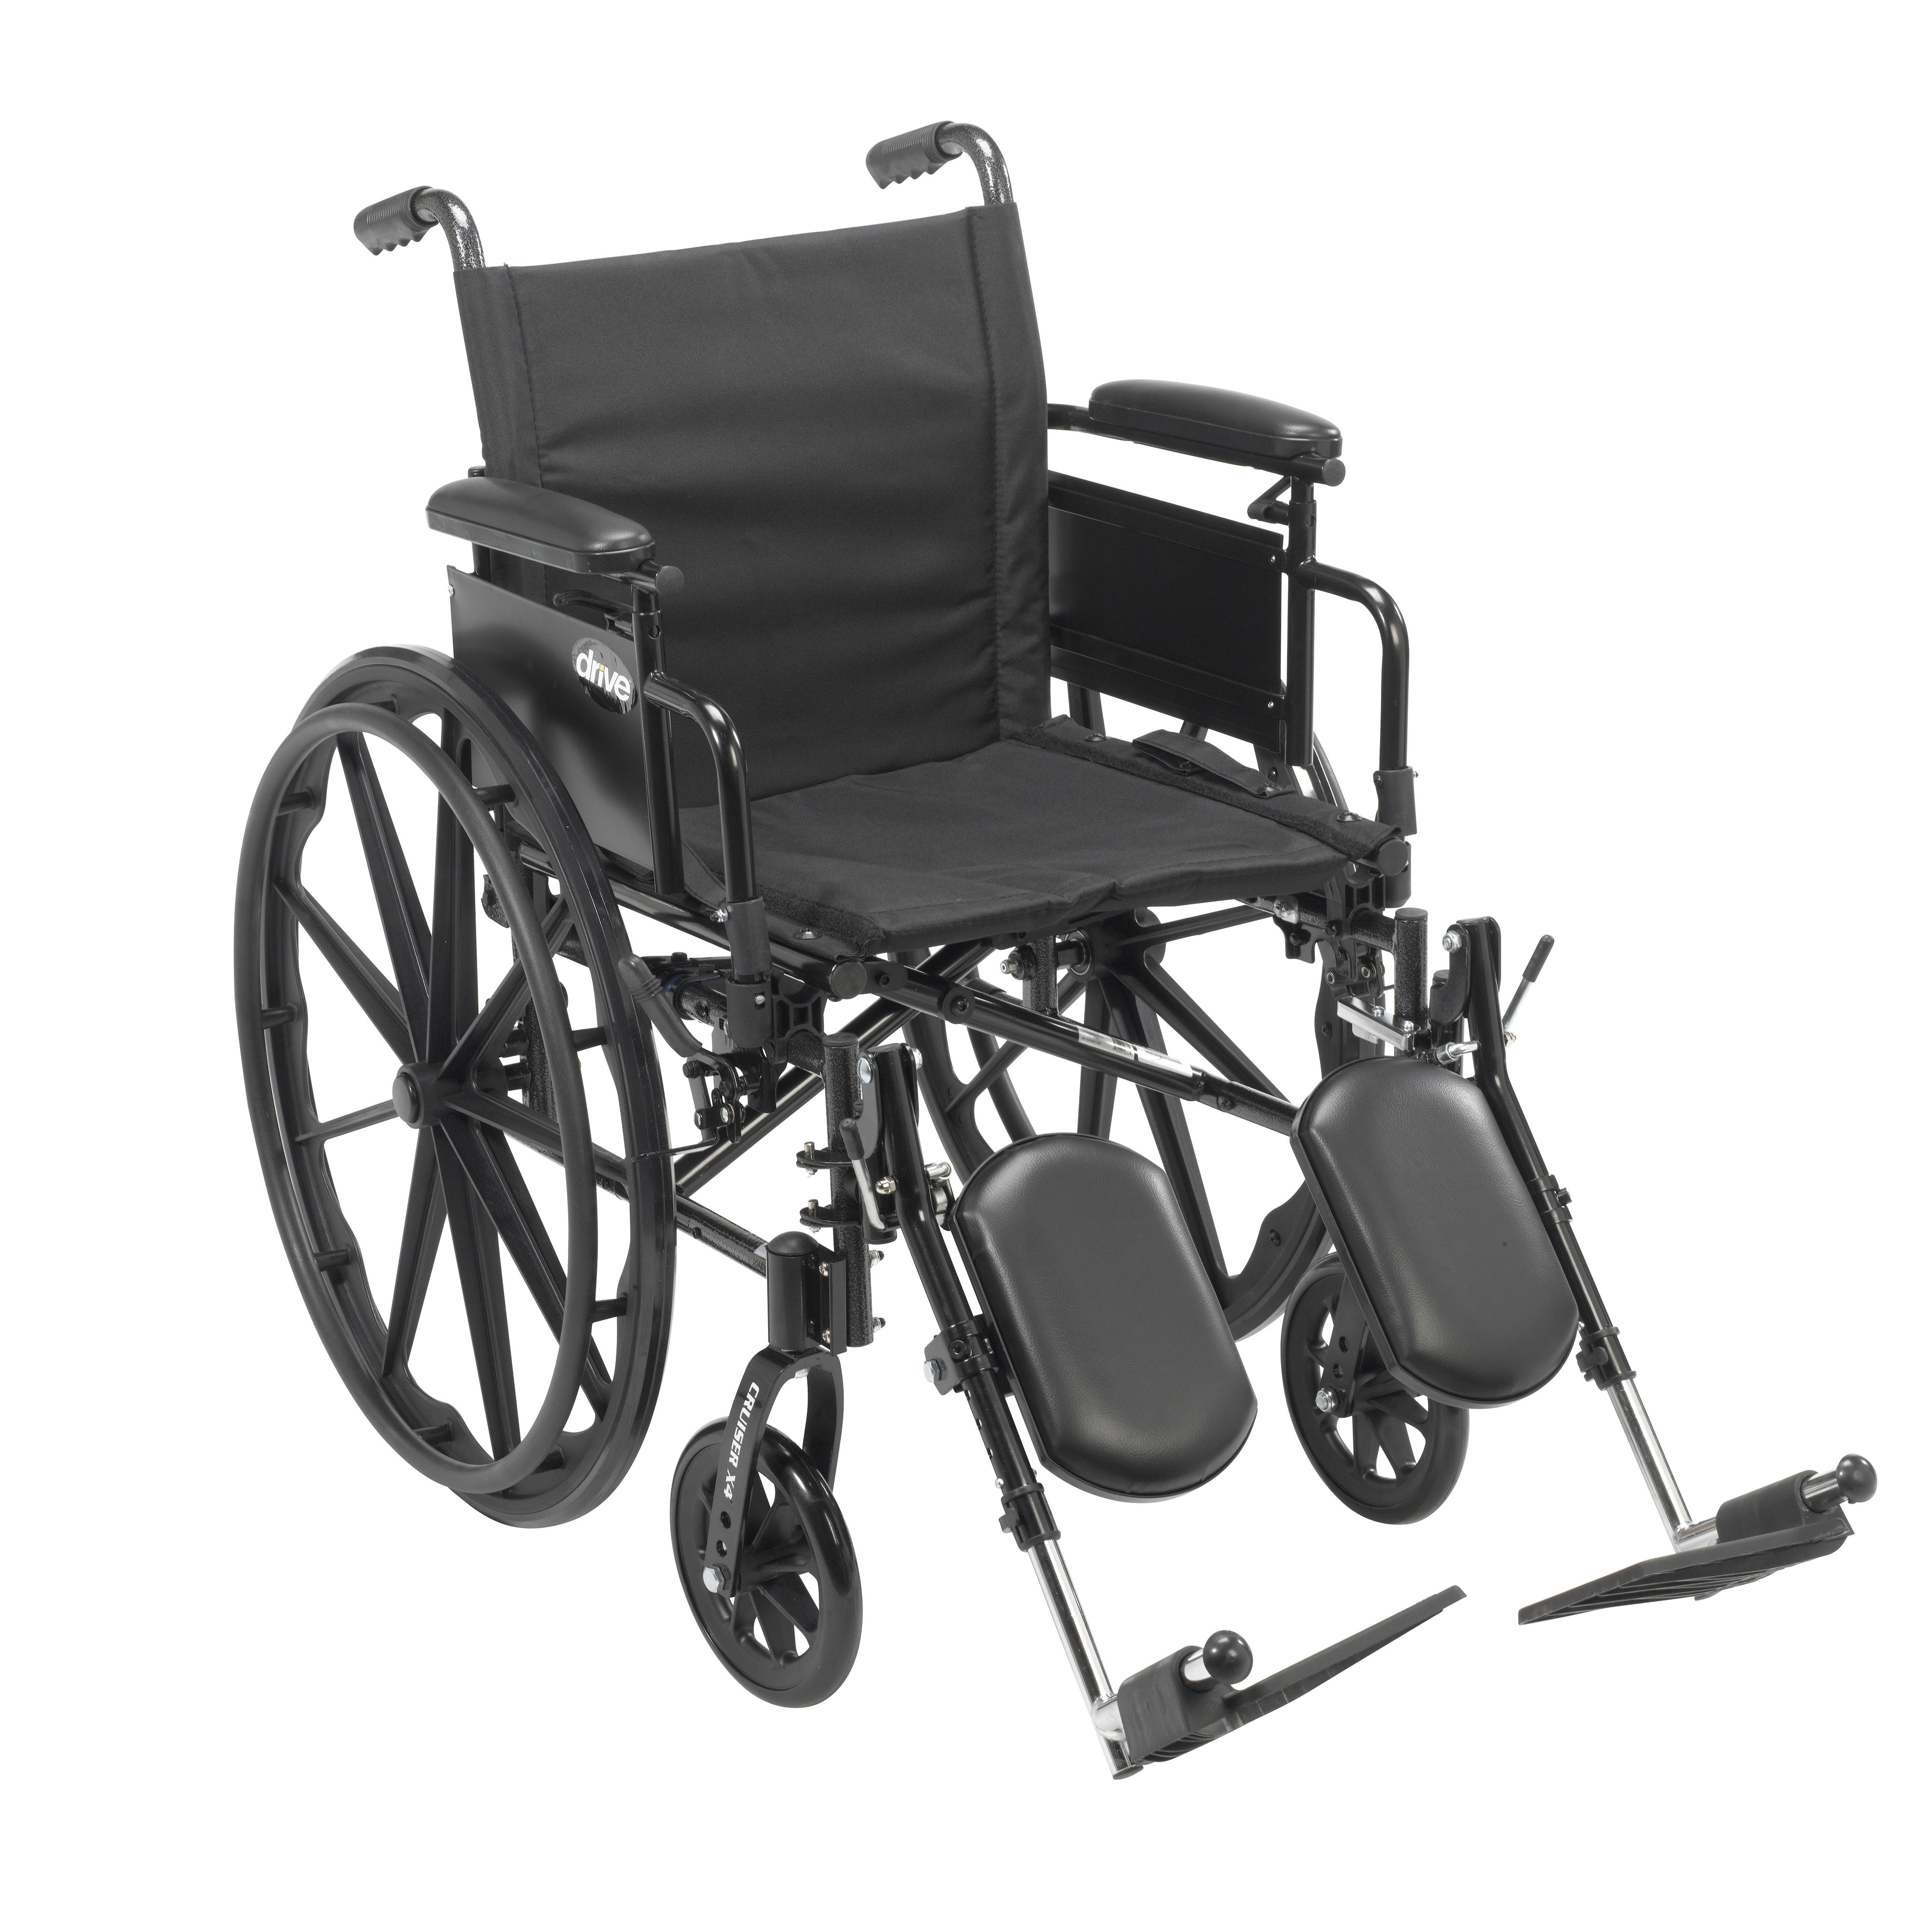 """Cruiser X4 Lightweight Dual Axle Wheelchair with Adjustable Detachable Arms, Desk Arms, Elevating Leg Rests, 18"""" Seat"""